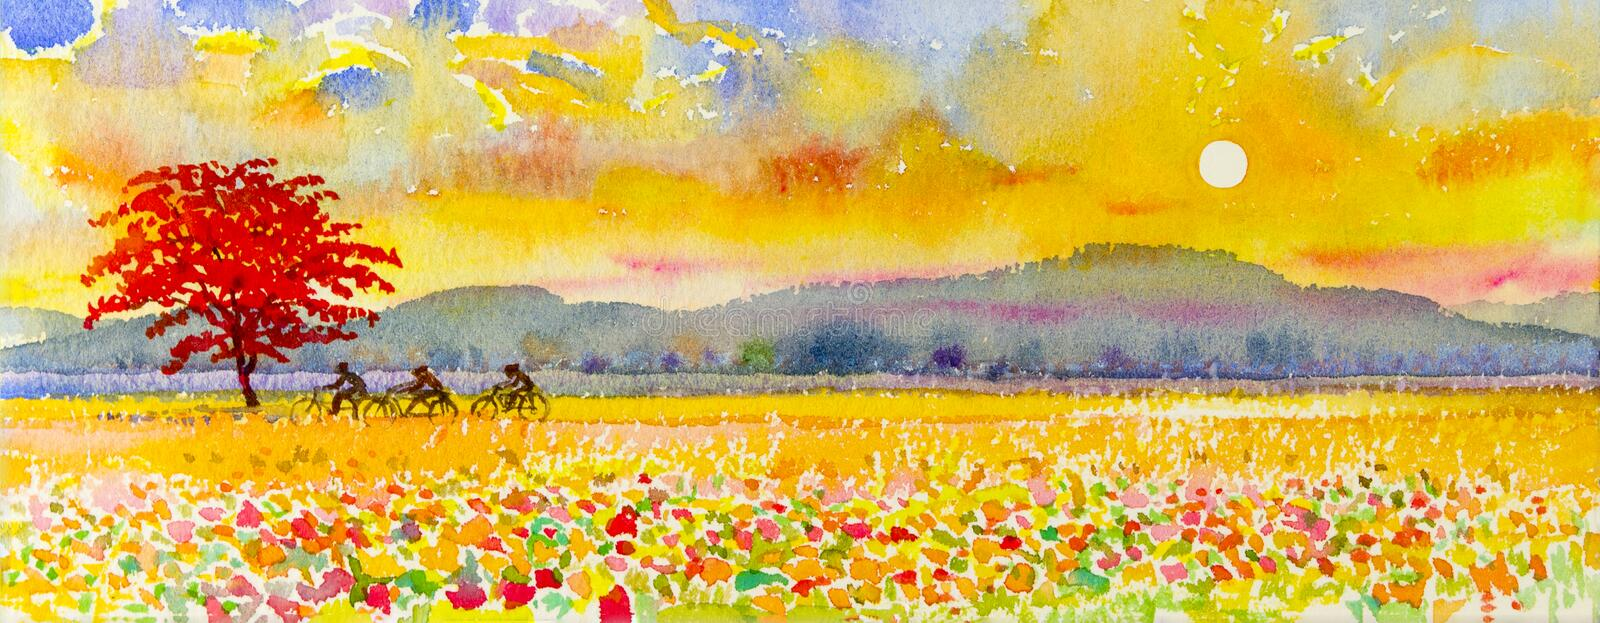 Landscape original painting family fitness by ride bicycle and sunset. Watercolor landscape original painting family fitness by ride bicycle and sunset in royalty free illustration